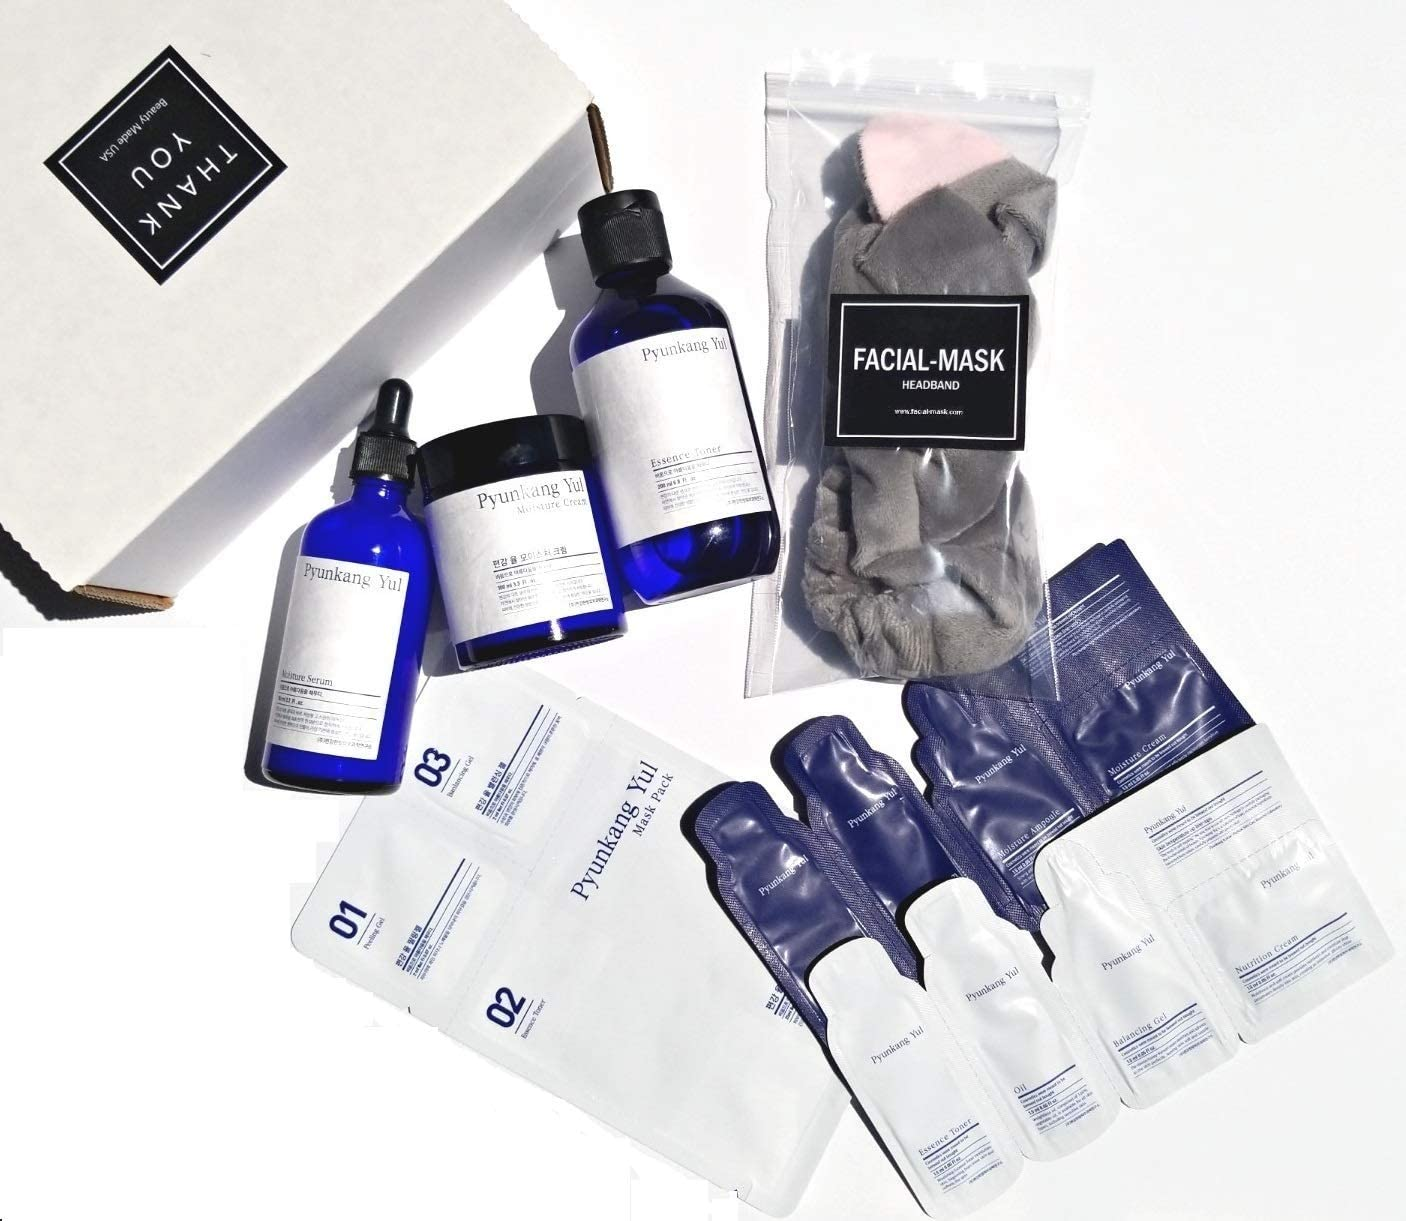 Pyunkang yul Gift Set with Essence Toner + Moisture Serum + Moisture Cream + (All Full Size in Gift Box as the Photo) Comes with FACIAL-MASK Headband + 1 Mask + 2 Sample Kits